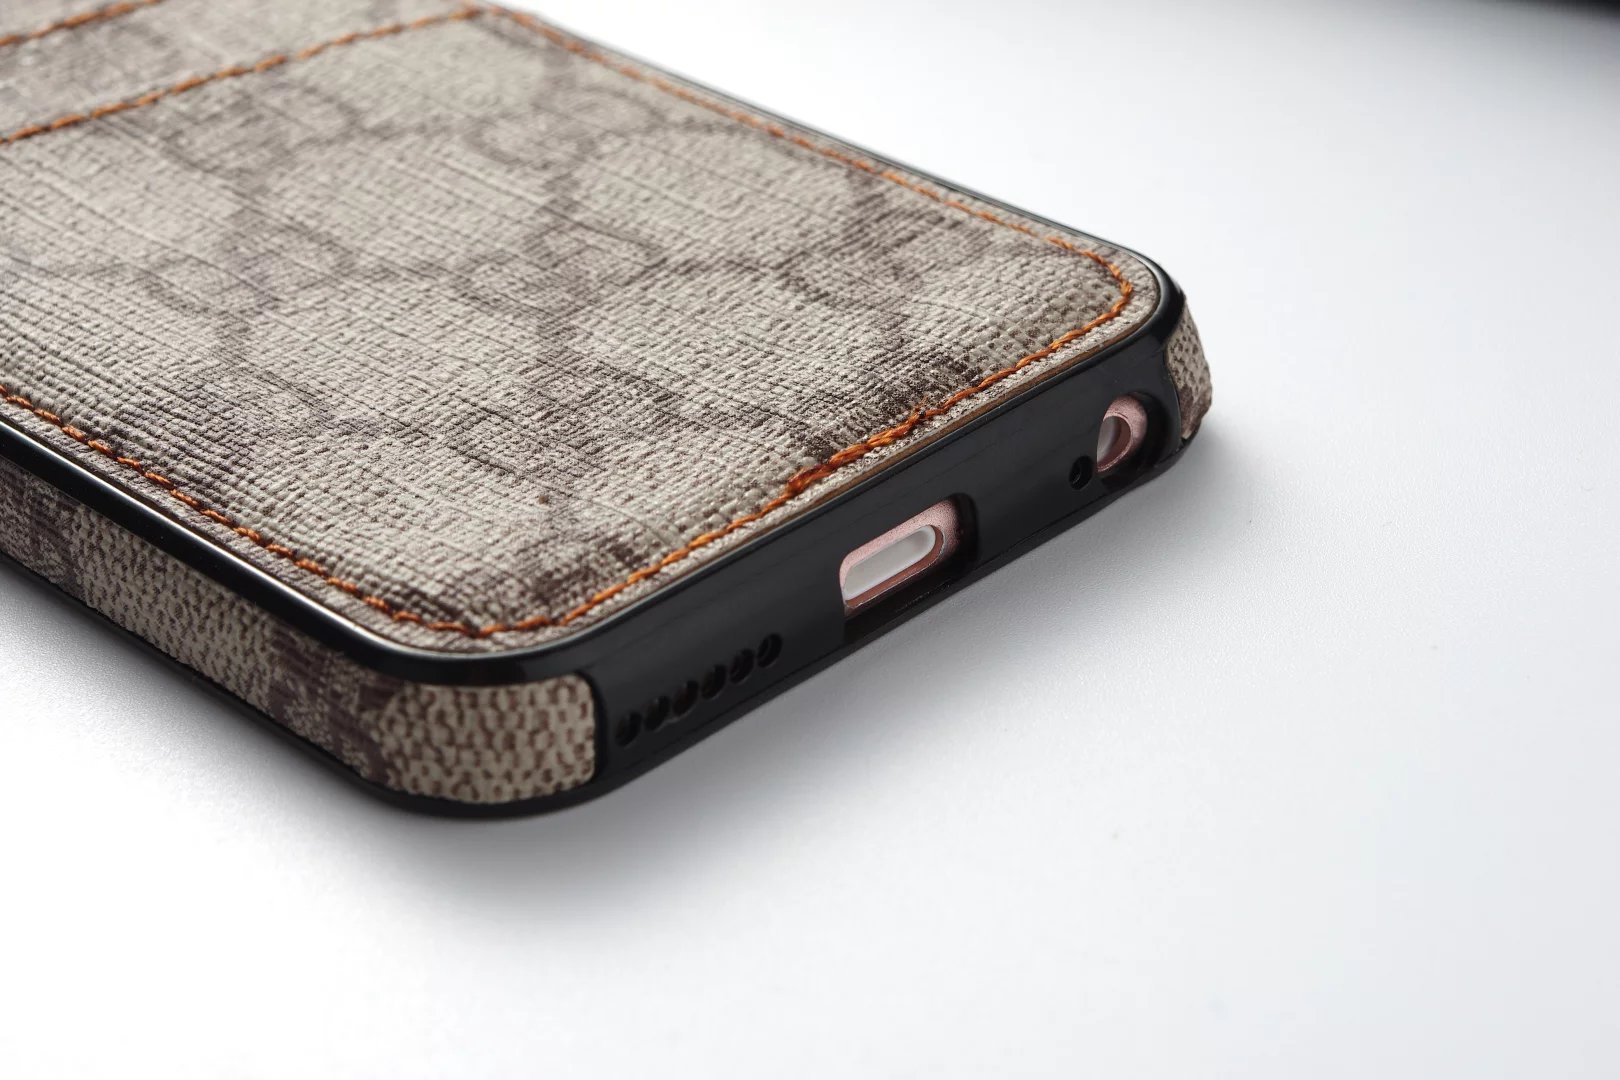 schutzhülle iphone iphone gummihülle Louis Vuitton iphone6s hülle s6s over 6slbst gestalten iphone 3 schutzhülle smartphone cover hülle iphone 6s iphone ca6s individuell iphone hülle silikon